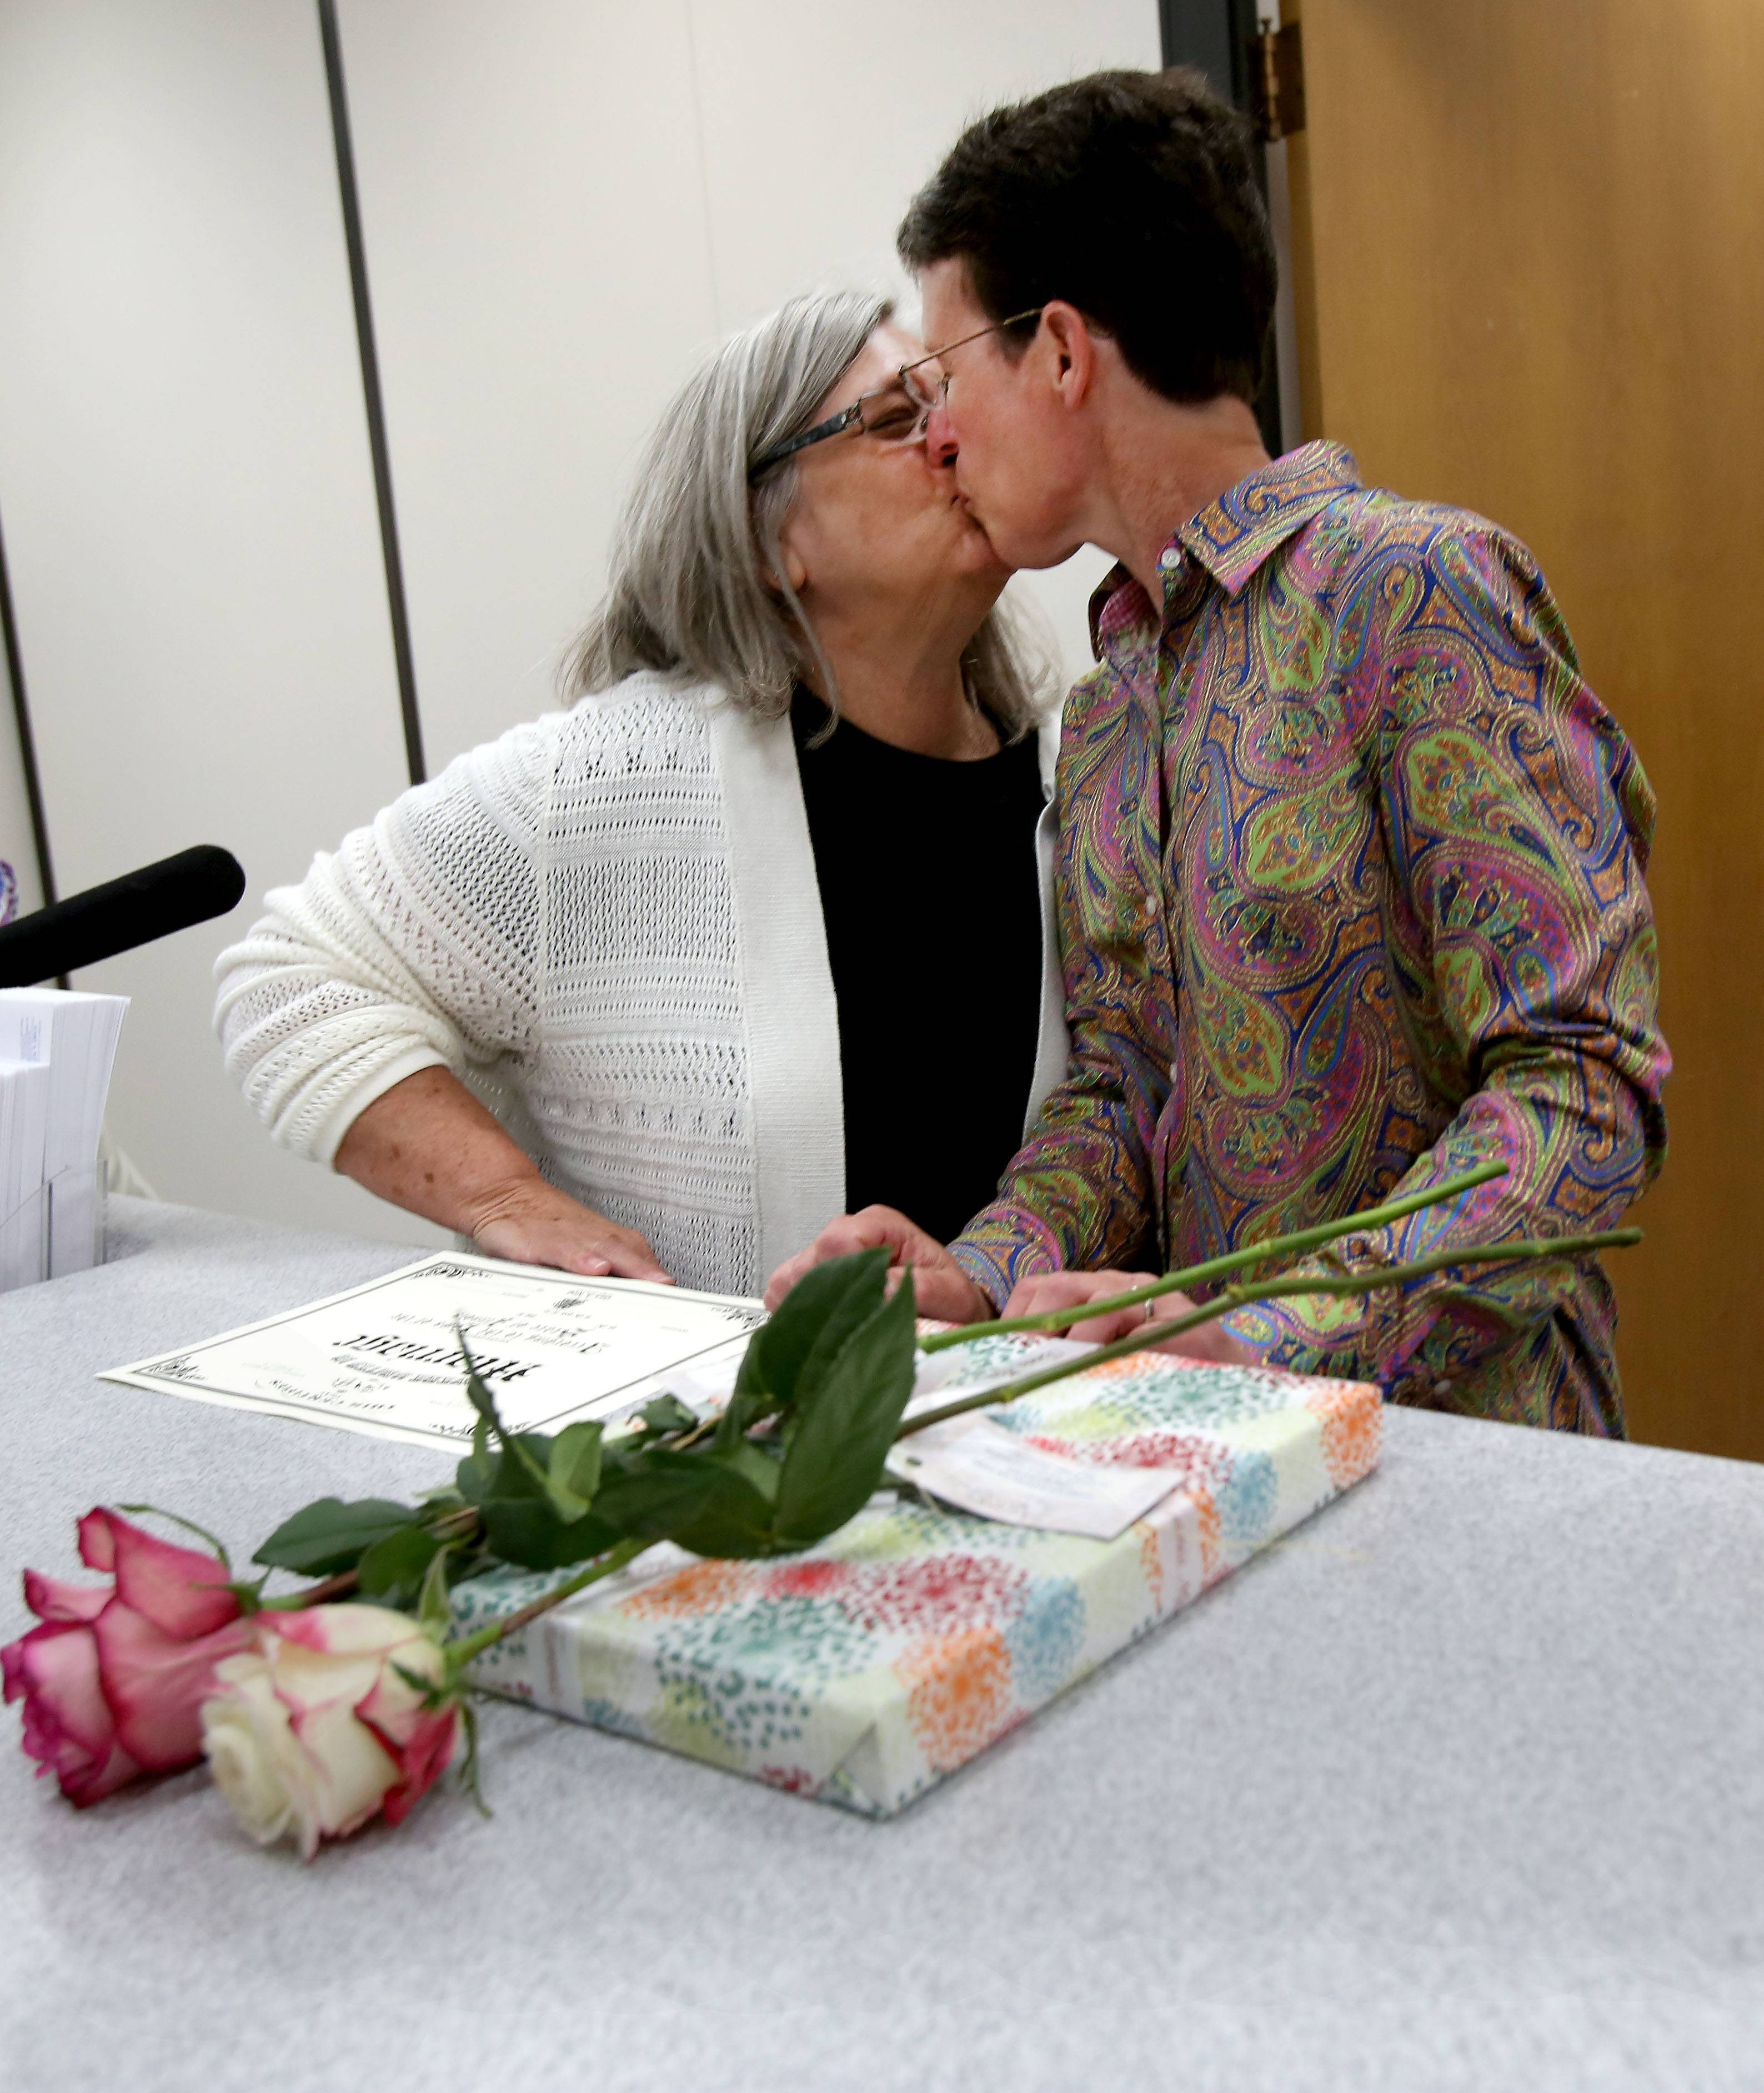 Barb McMillan, left, kisses Roseann Szalkowski after they were able to convert their civil union to a marriage license at the DuPage County Clerk's office Monday in Wheaton. The Roselle couple has been together since 2011.